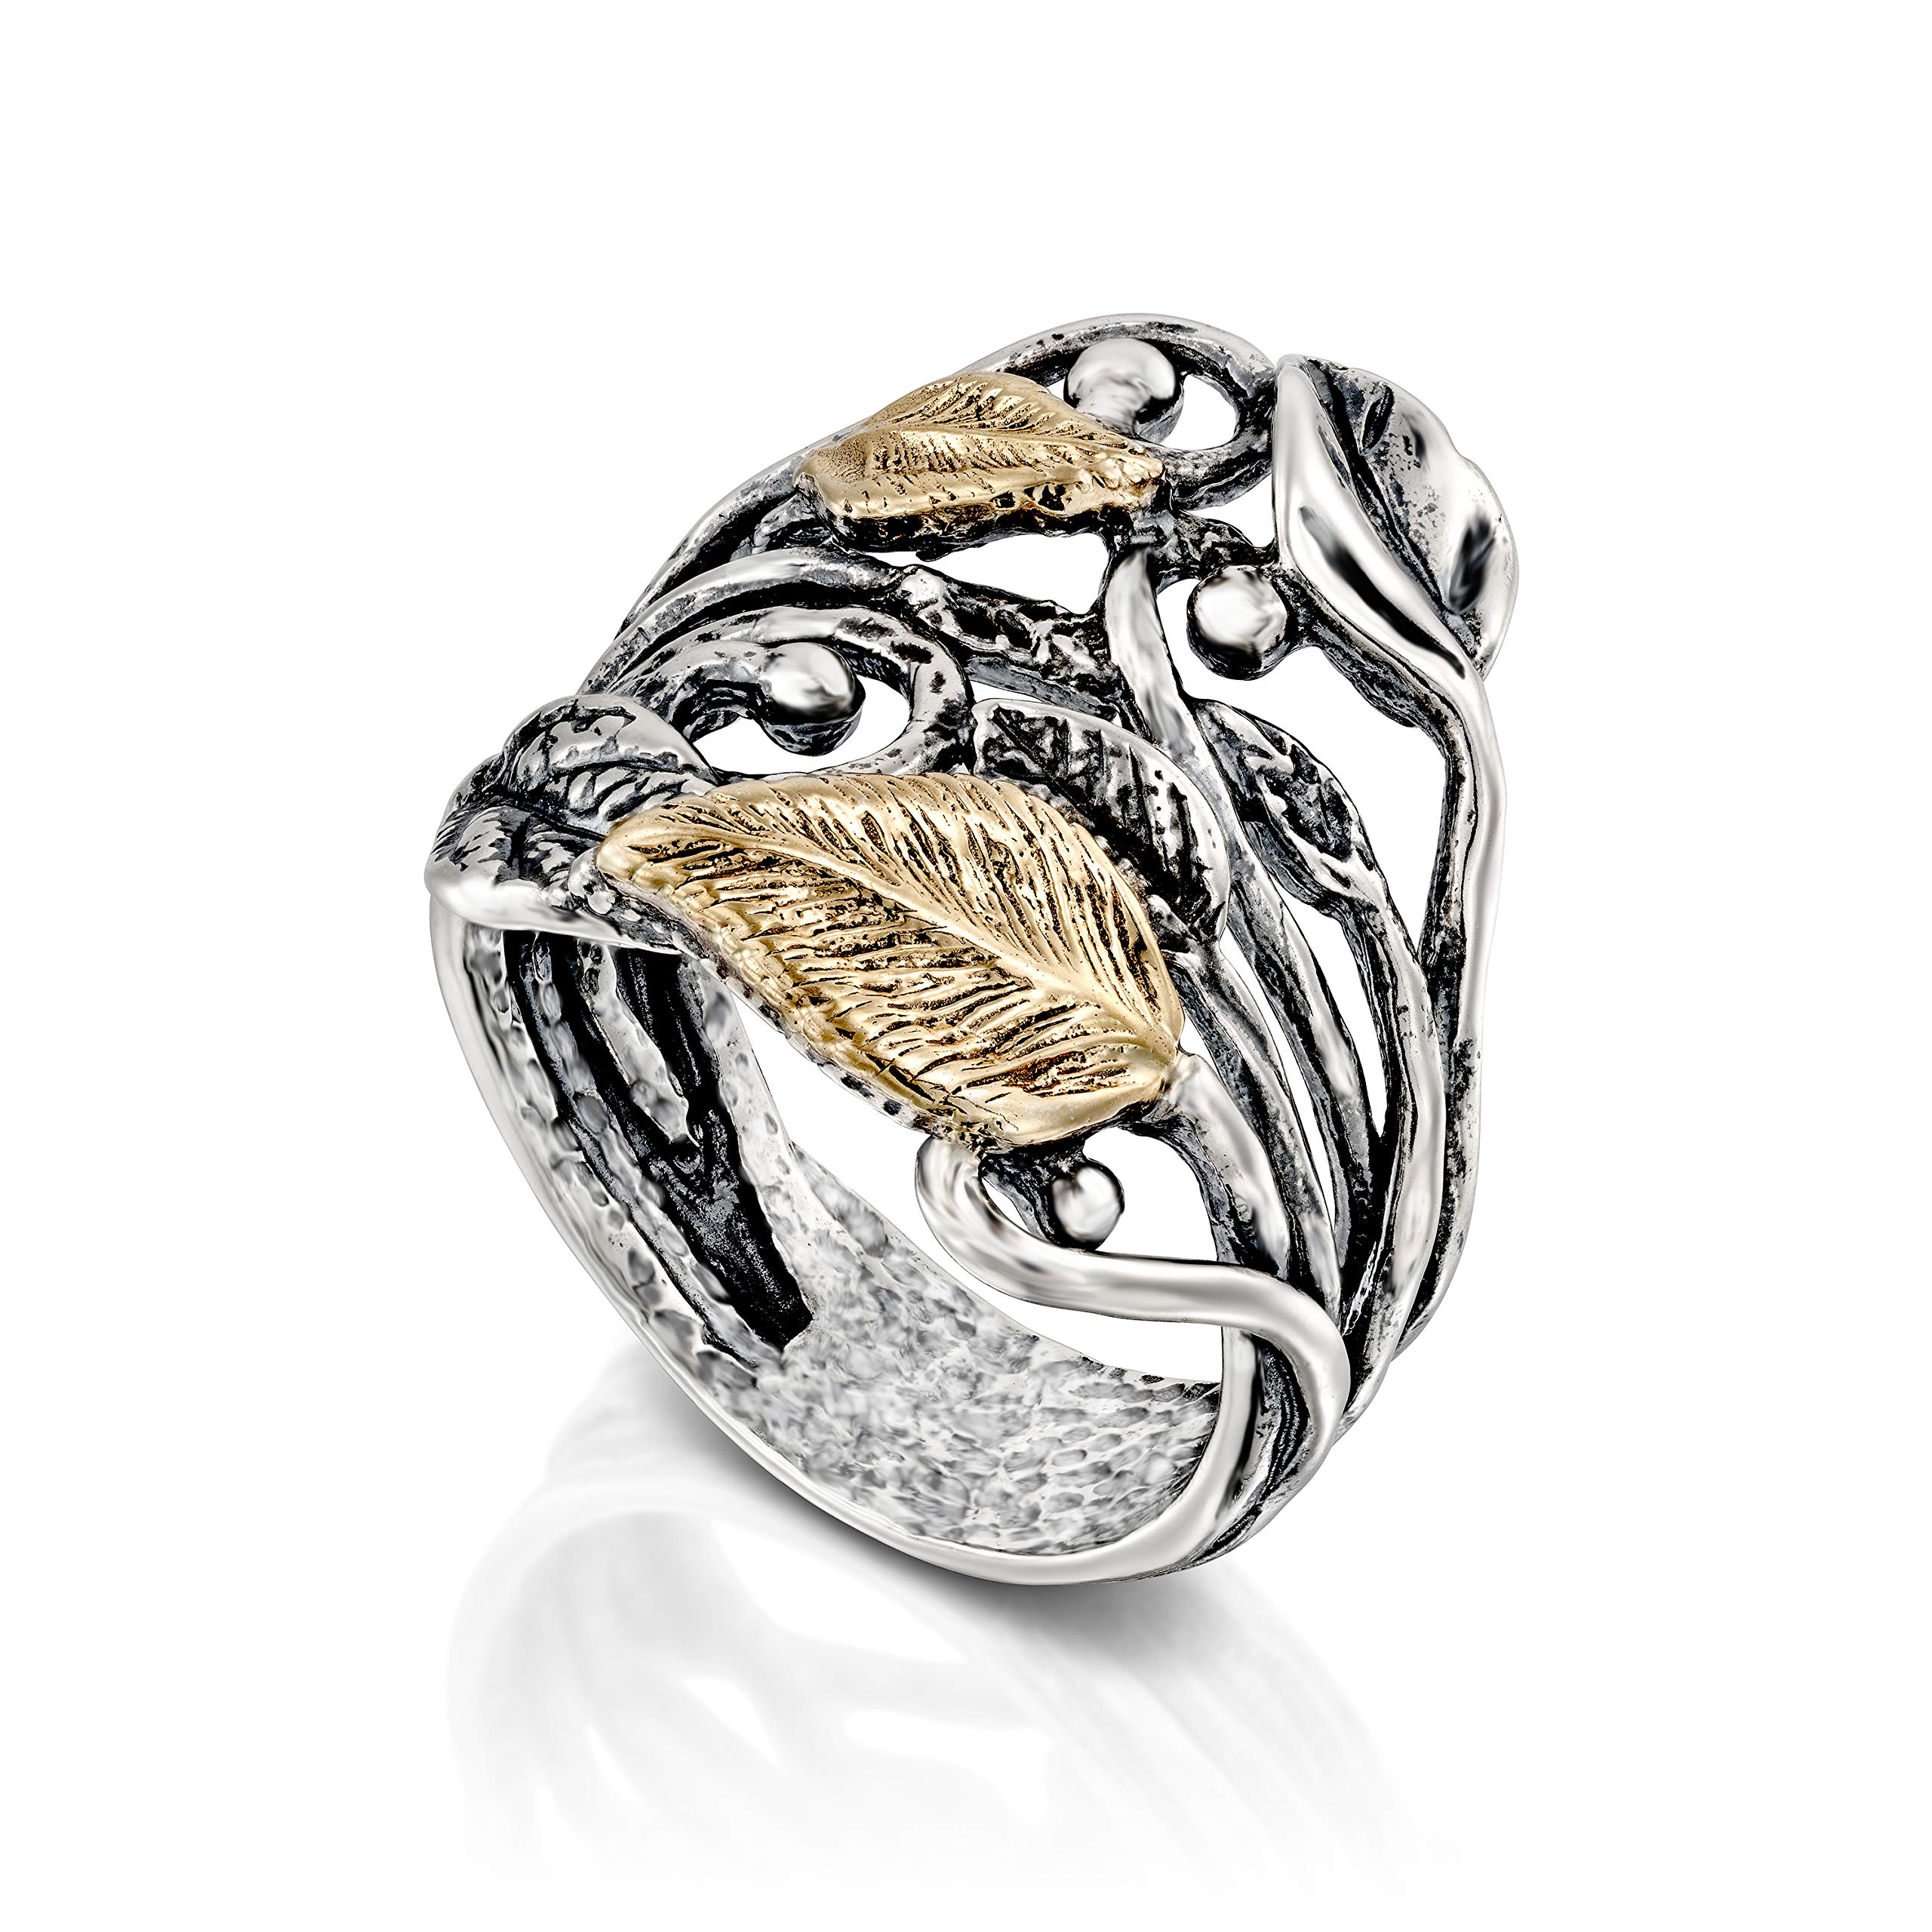 Paz Creations 925 Sterling Silver and 14K Gold Leaf Ring (9)